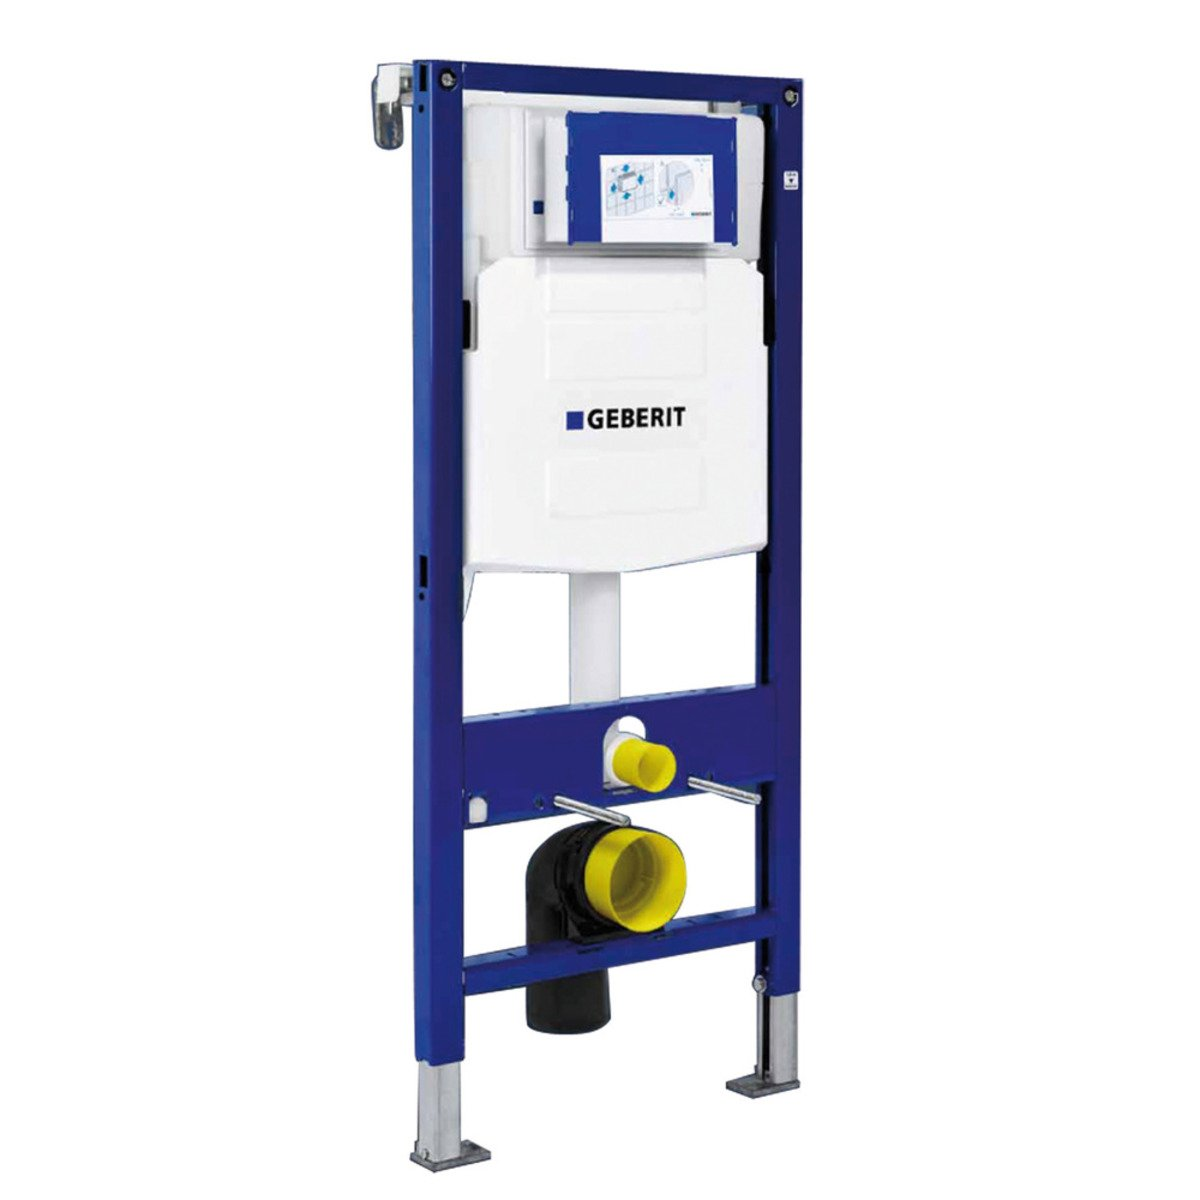 Compact Hangtoilet Geberit Systemfix 111305 Montage Element Voor Hangwc Met Up320